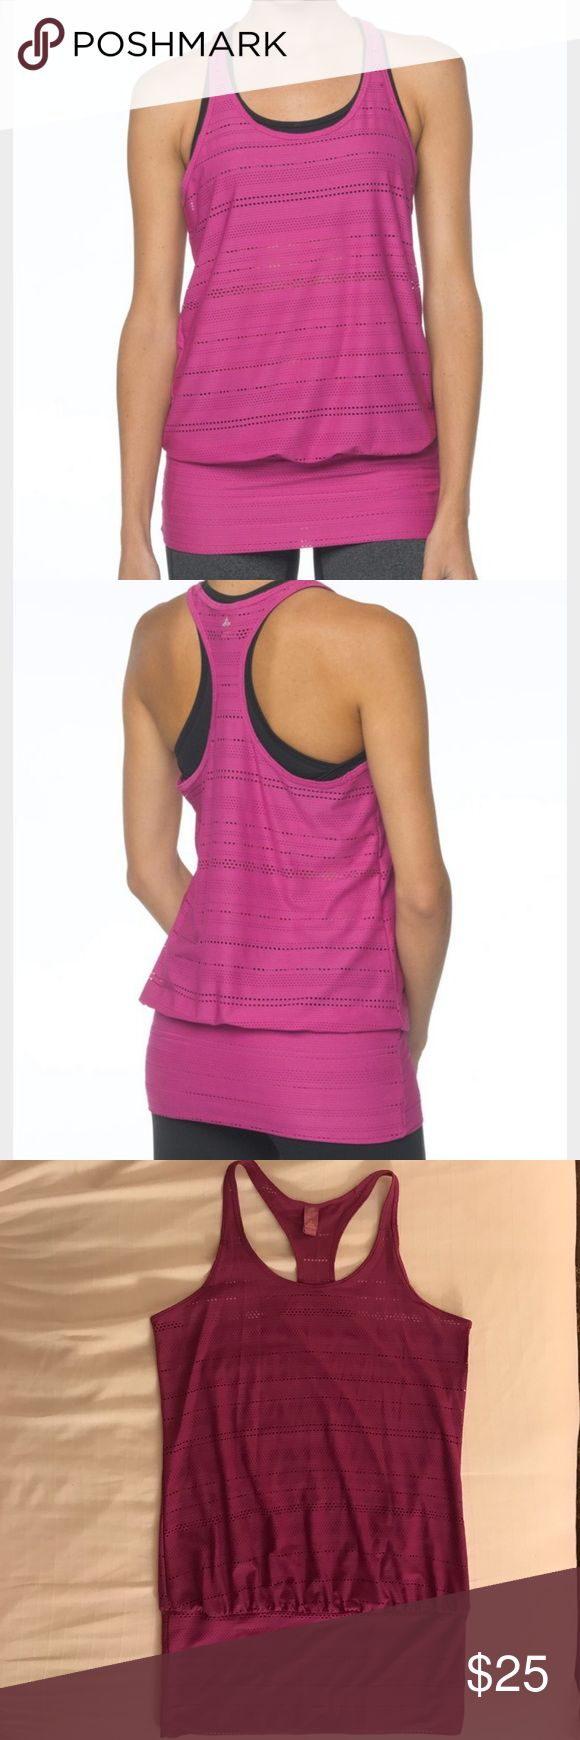 PrAna Ambrosia Athletic Tank Top Excellent condition PrAna Ambrosia Purple Tank Top. Breathable performance mesh dries quickly with a wide self band at the hem to keep it in place during a work out. Racerback style. Prana Tops Tank Tops